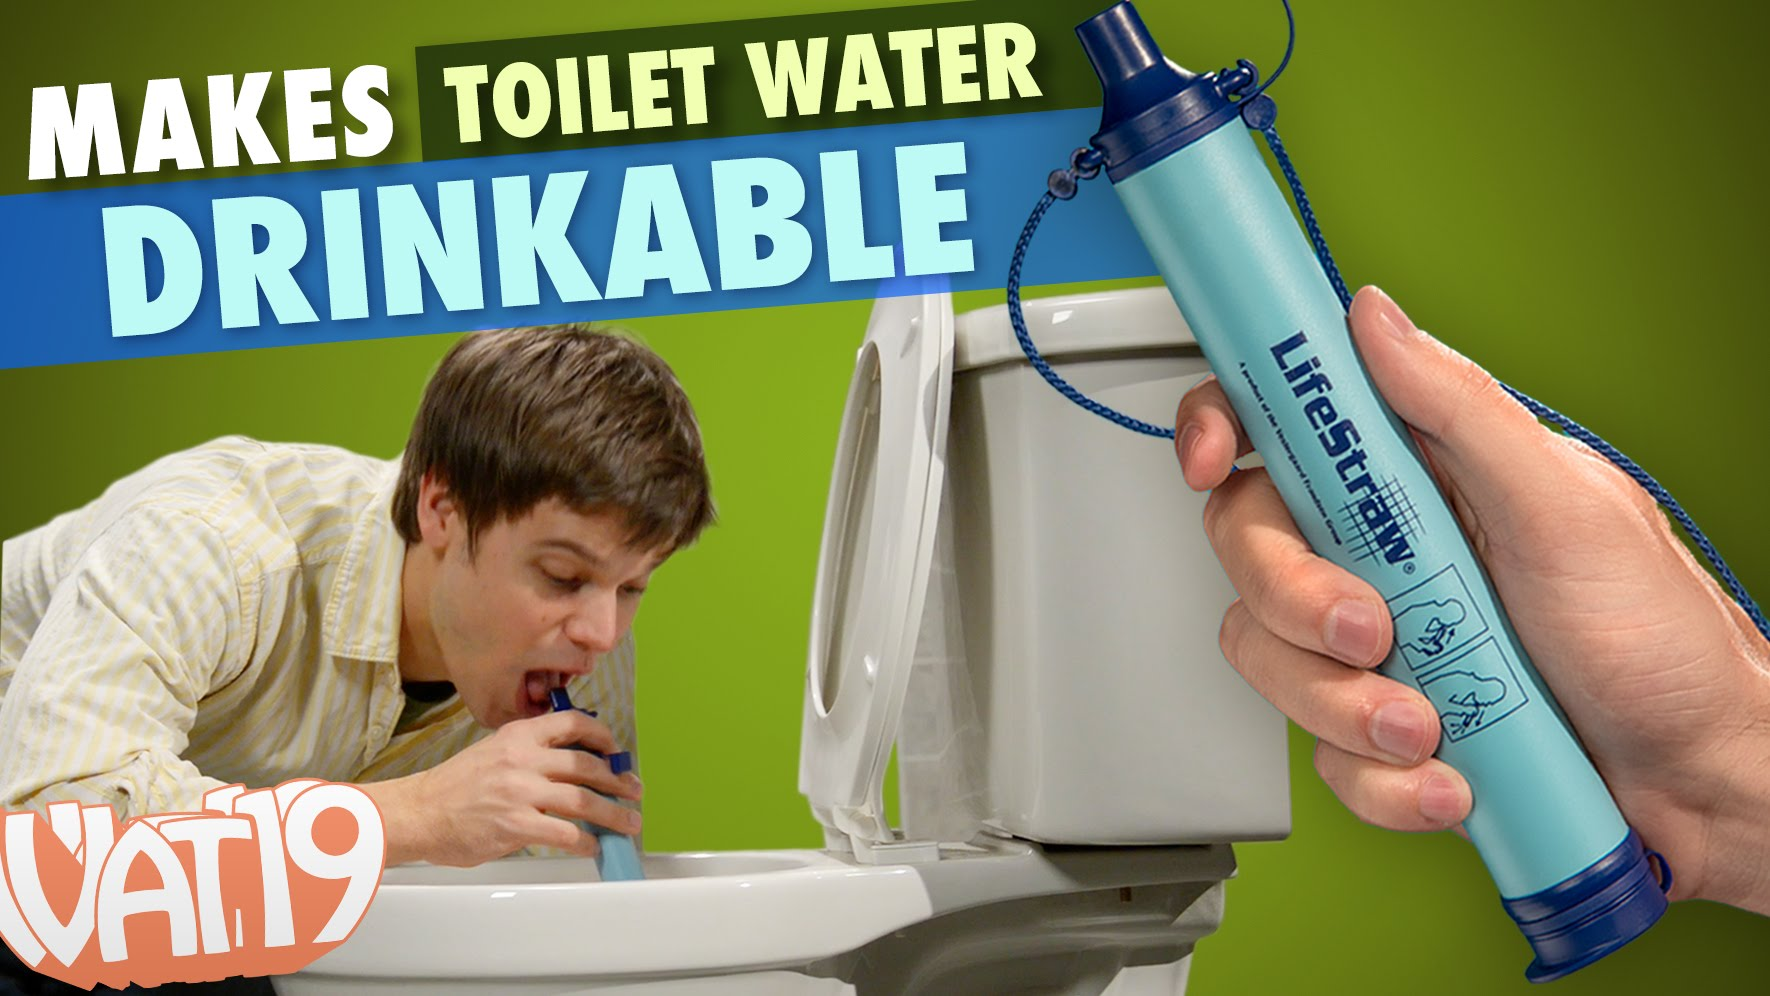 Lifestraw – An Instant and Portable Water Purifier